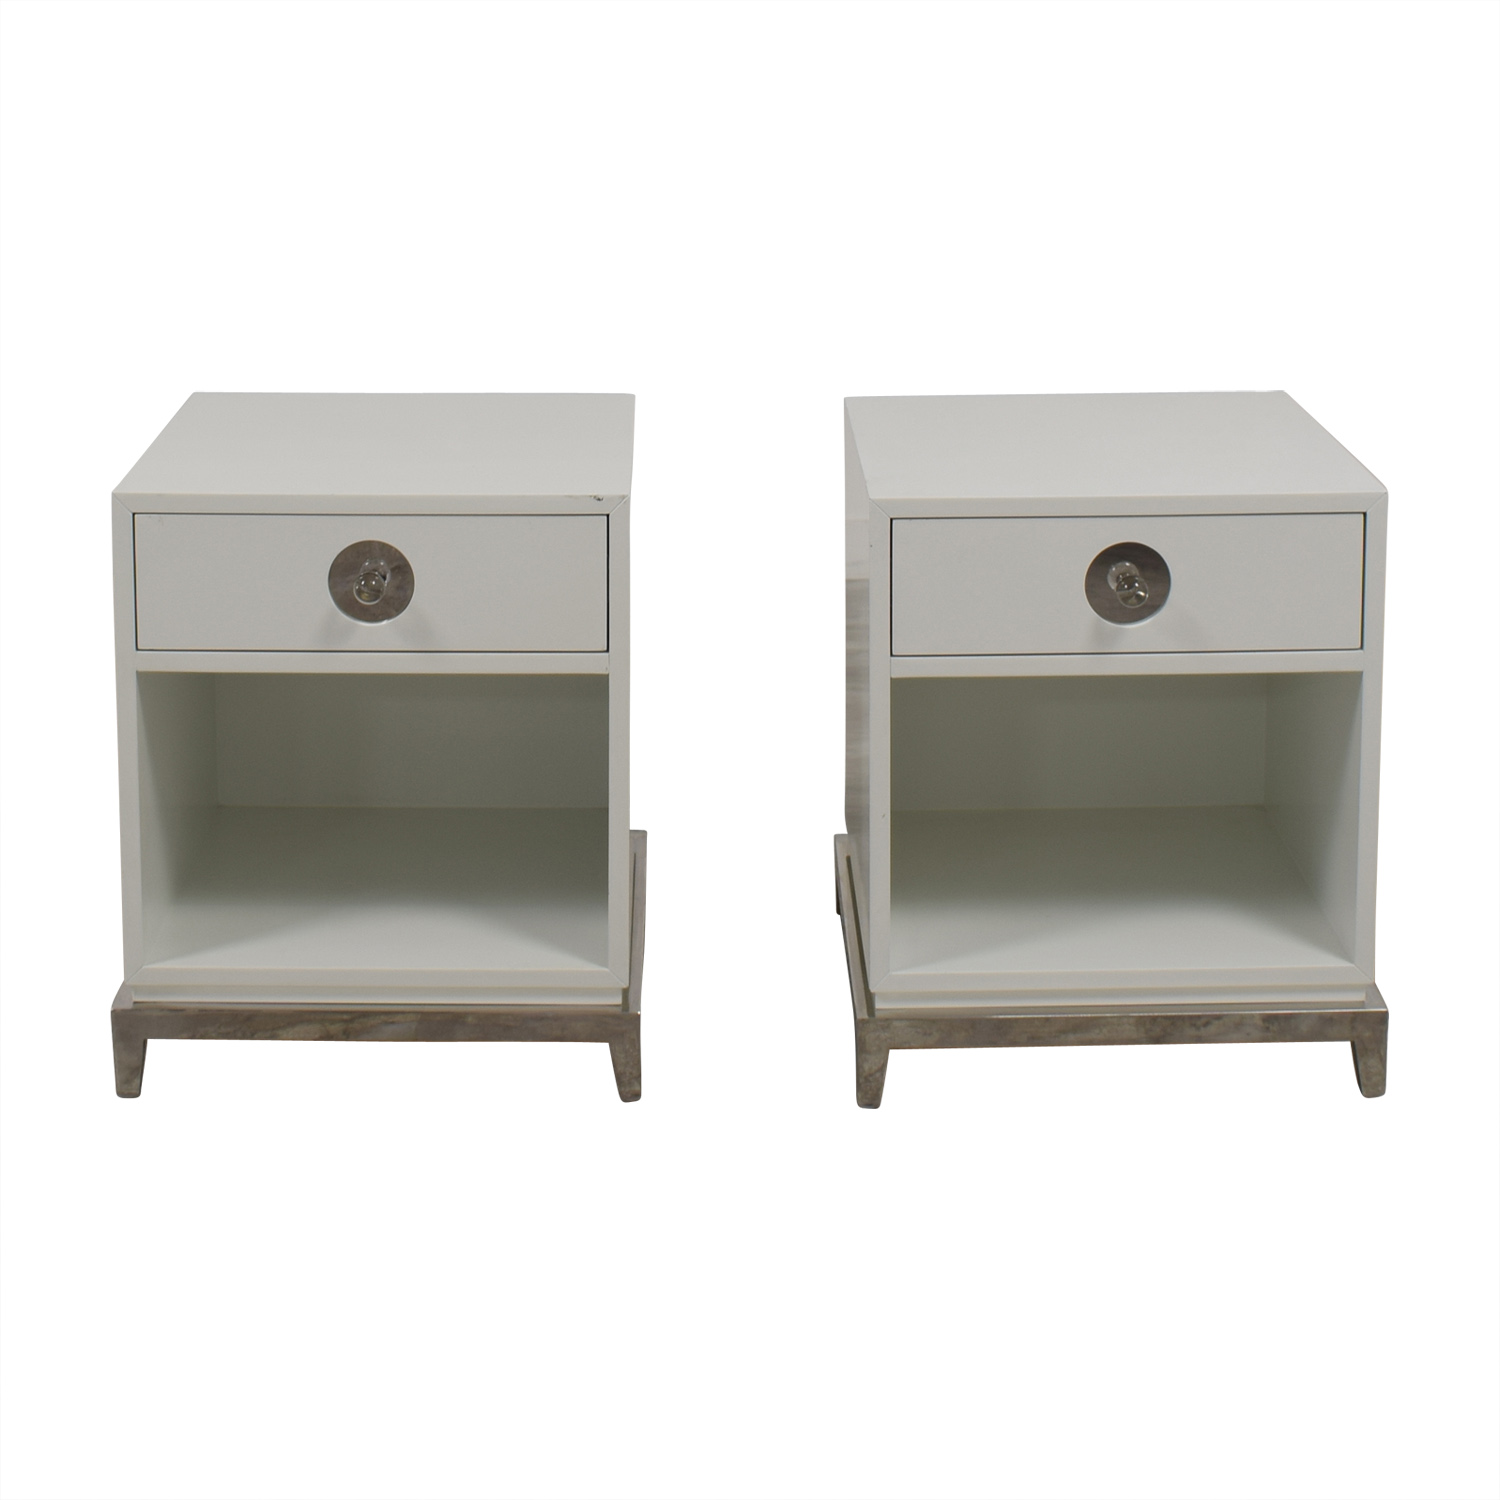 Jonathan Adler Jonathan Adler White Single-Drawer Side Tables for sale